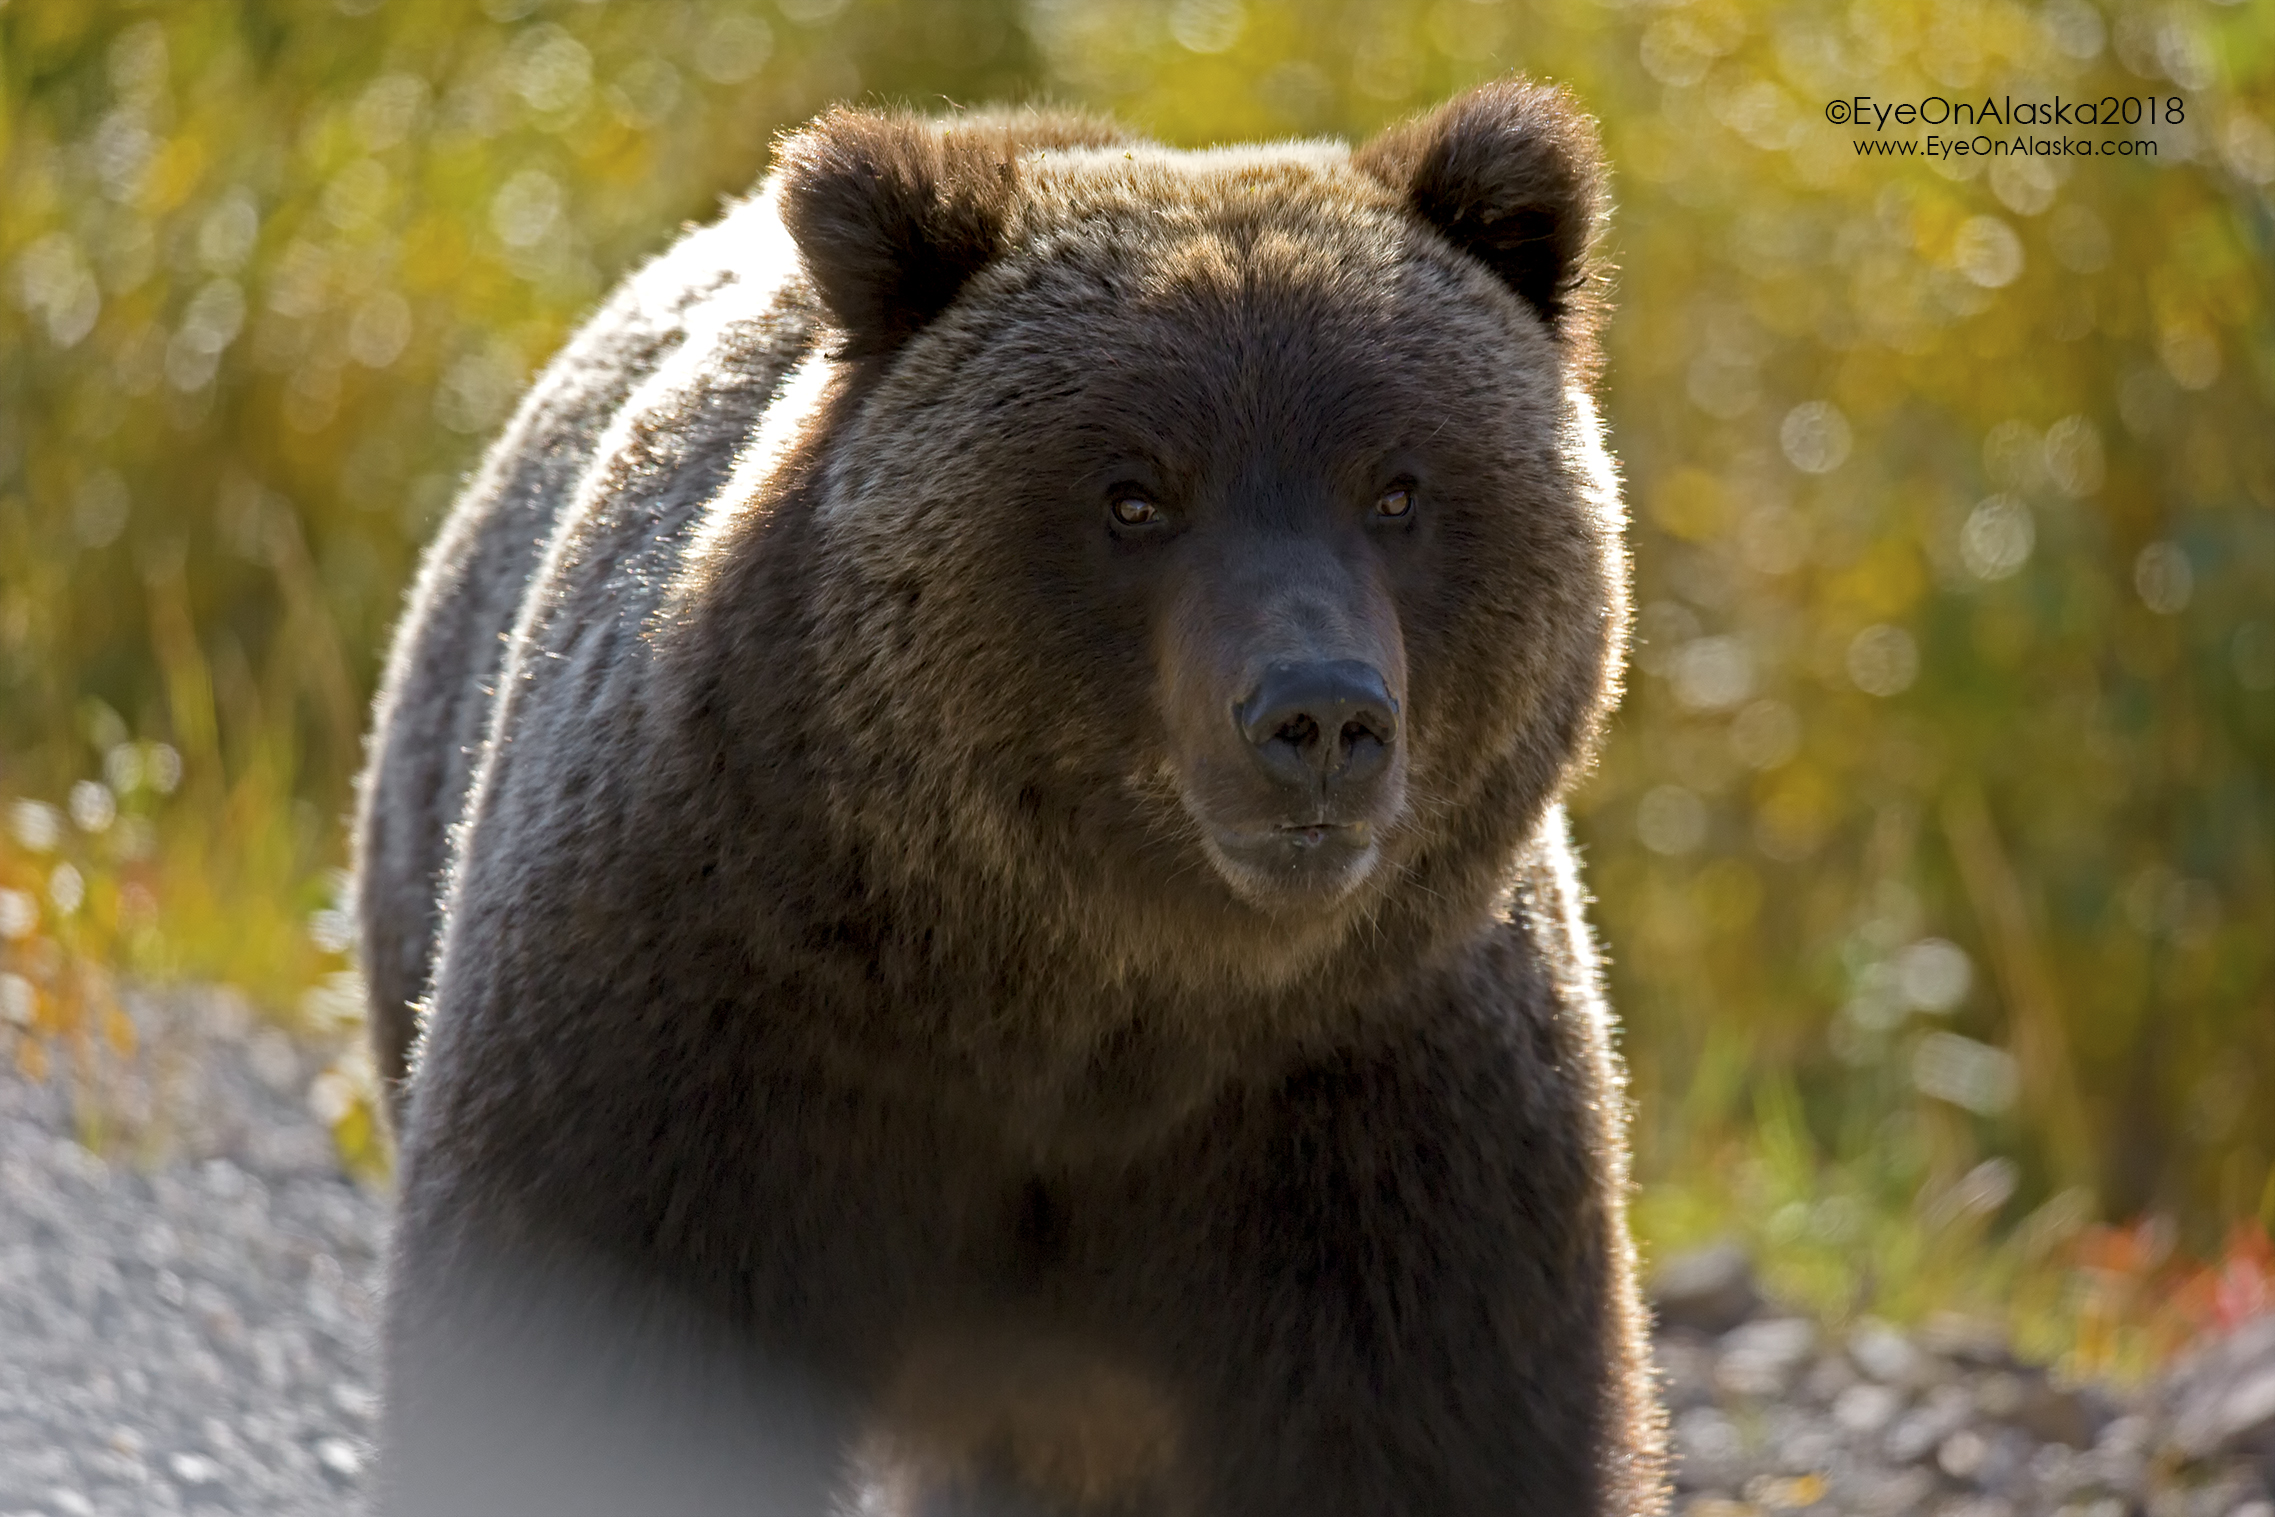 Eye contact with a grizzly bear.  These are special moments.  Glad there was a windshield between us ;)